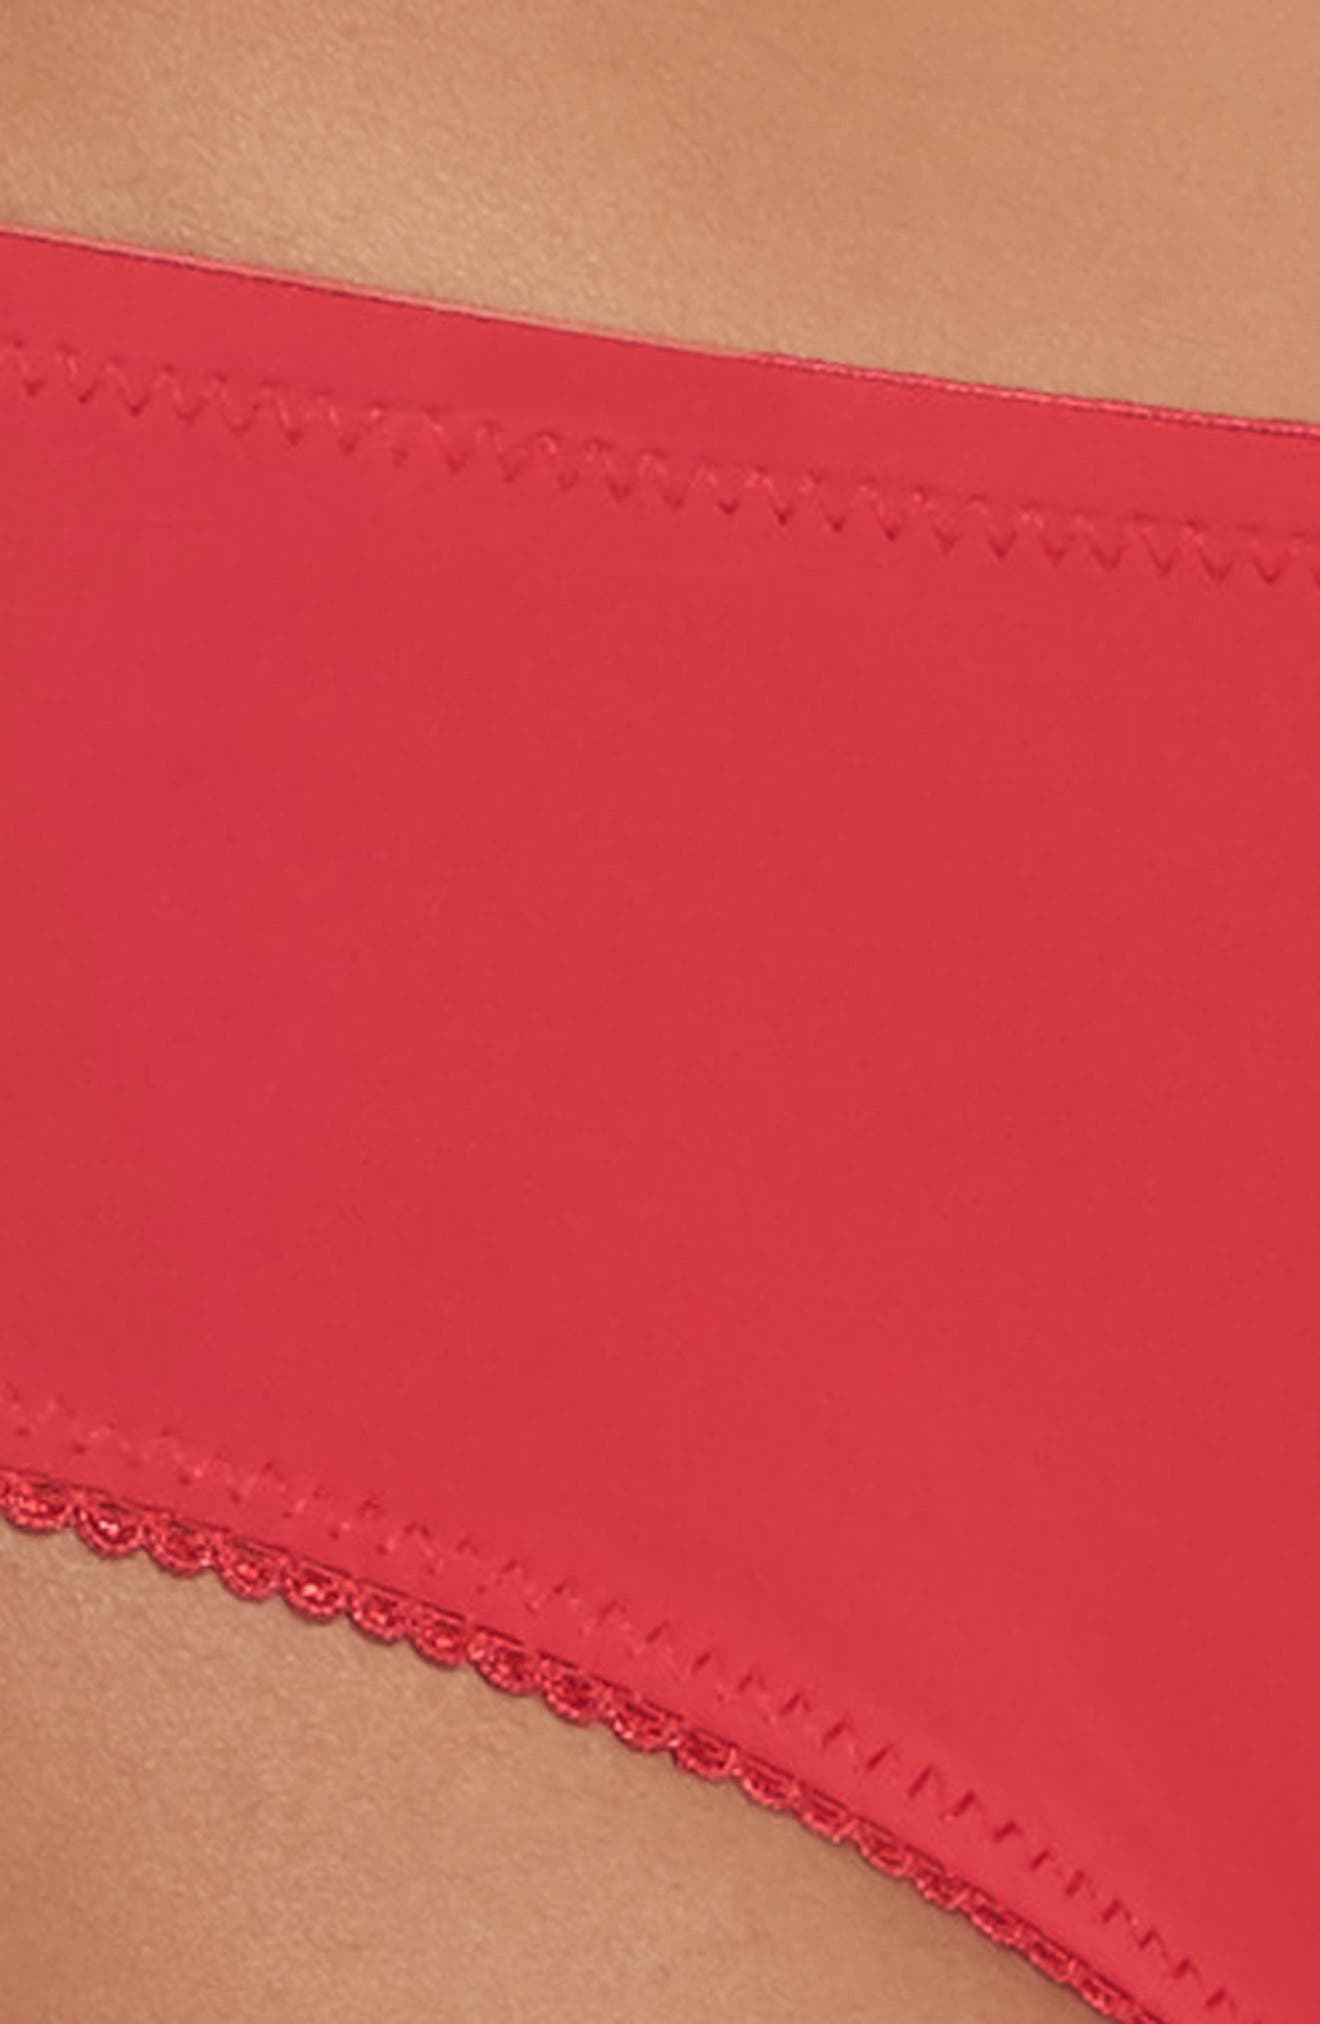 Le Petit Secret Naked Cutout Panties,                             Alternate thumbnail 3, color,